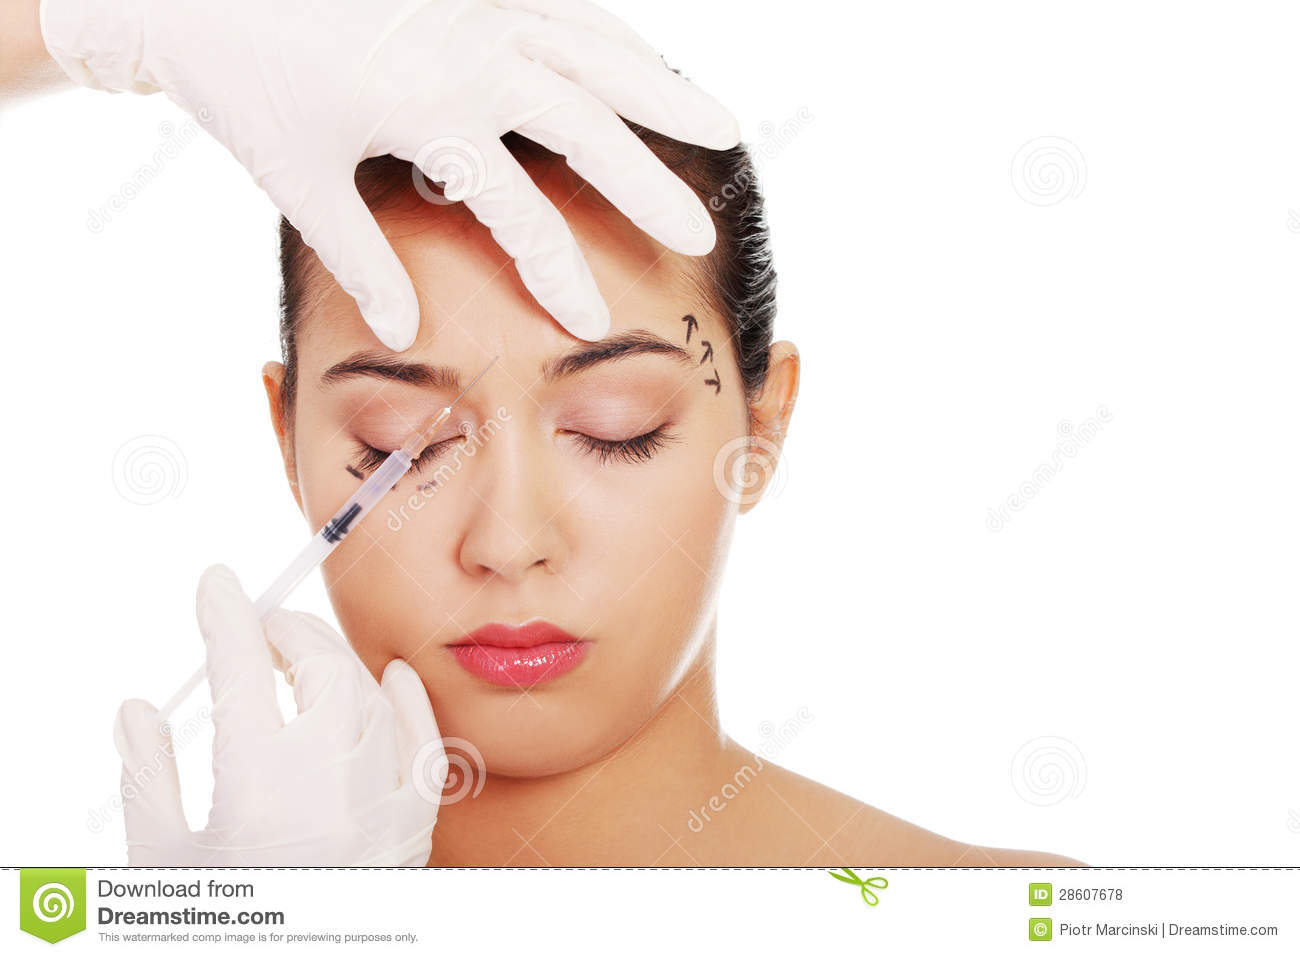 Royalty Free Stock Photos: Cosmetic botox injection in the female face